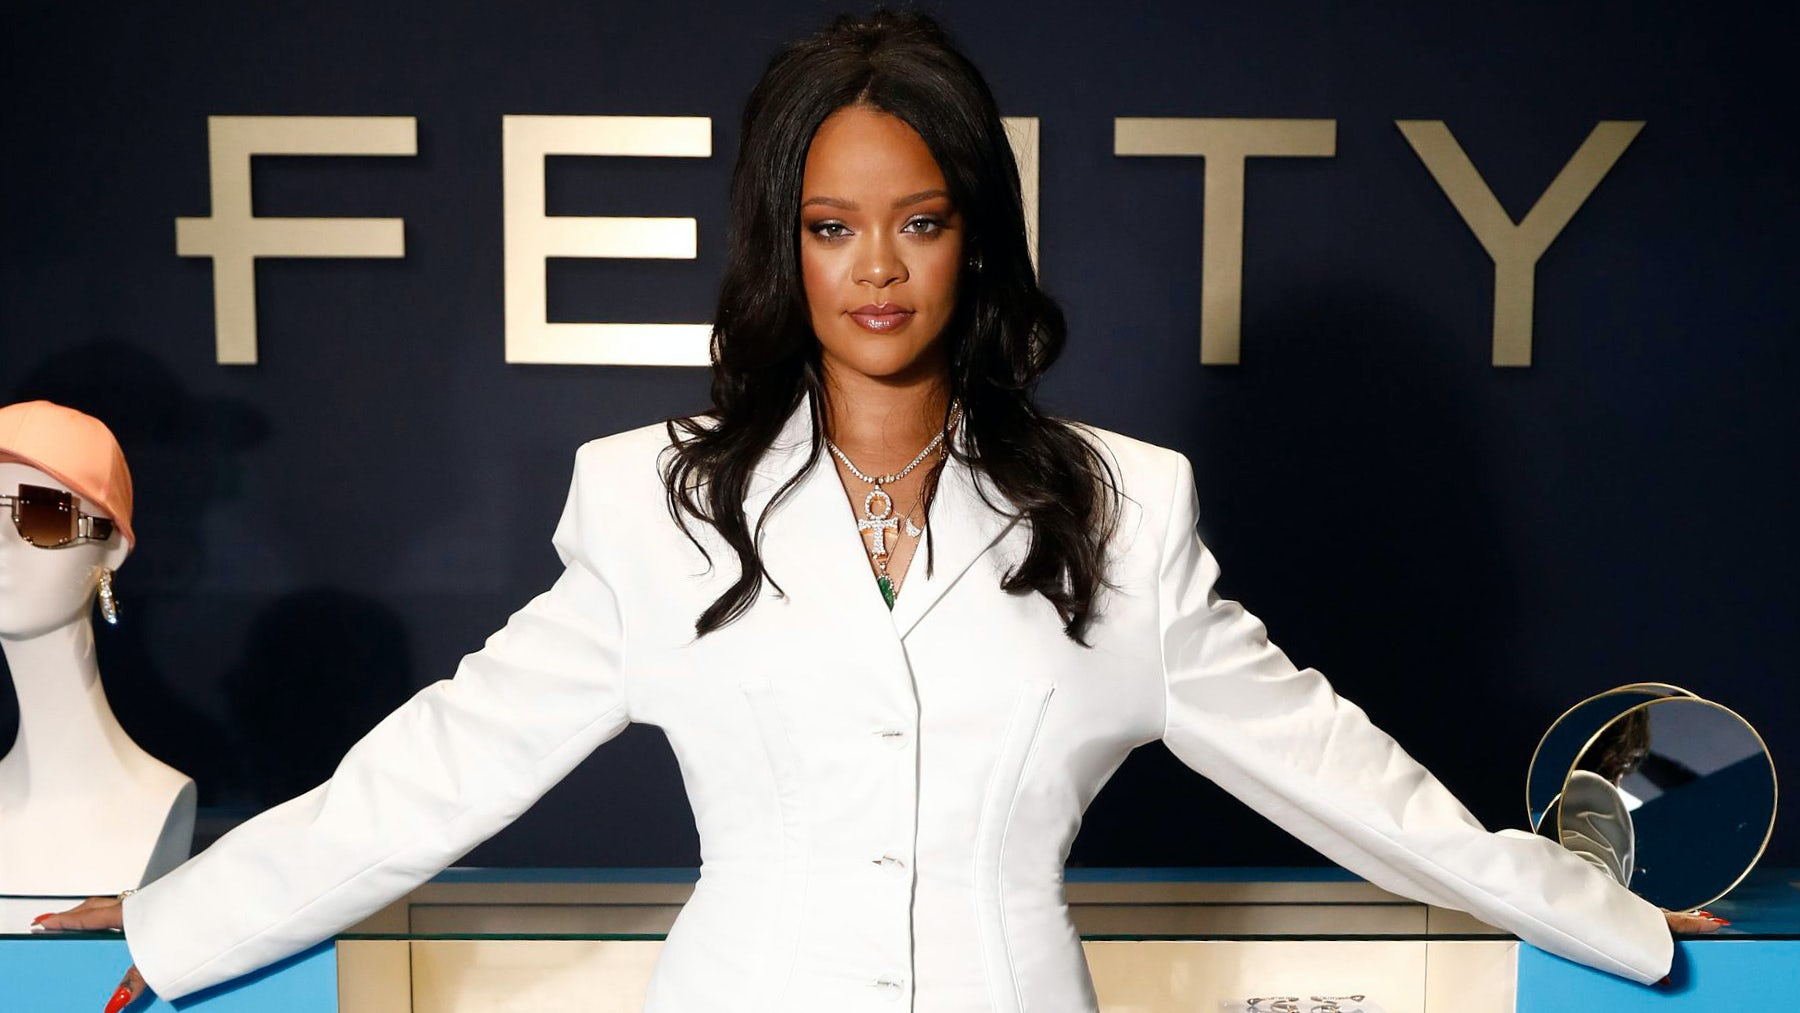 Rihanna hosts the Fenty Launch on May 22, 2019 in Paris | Source: Getty Images